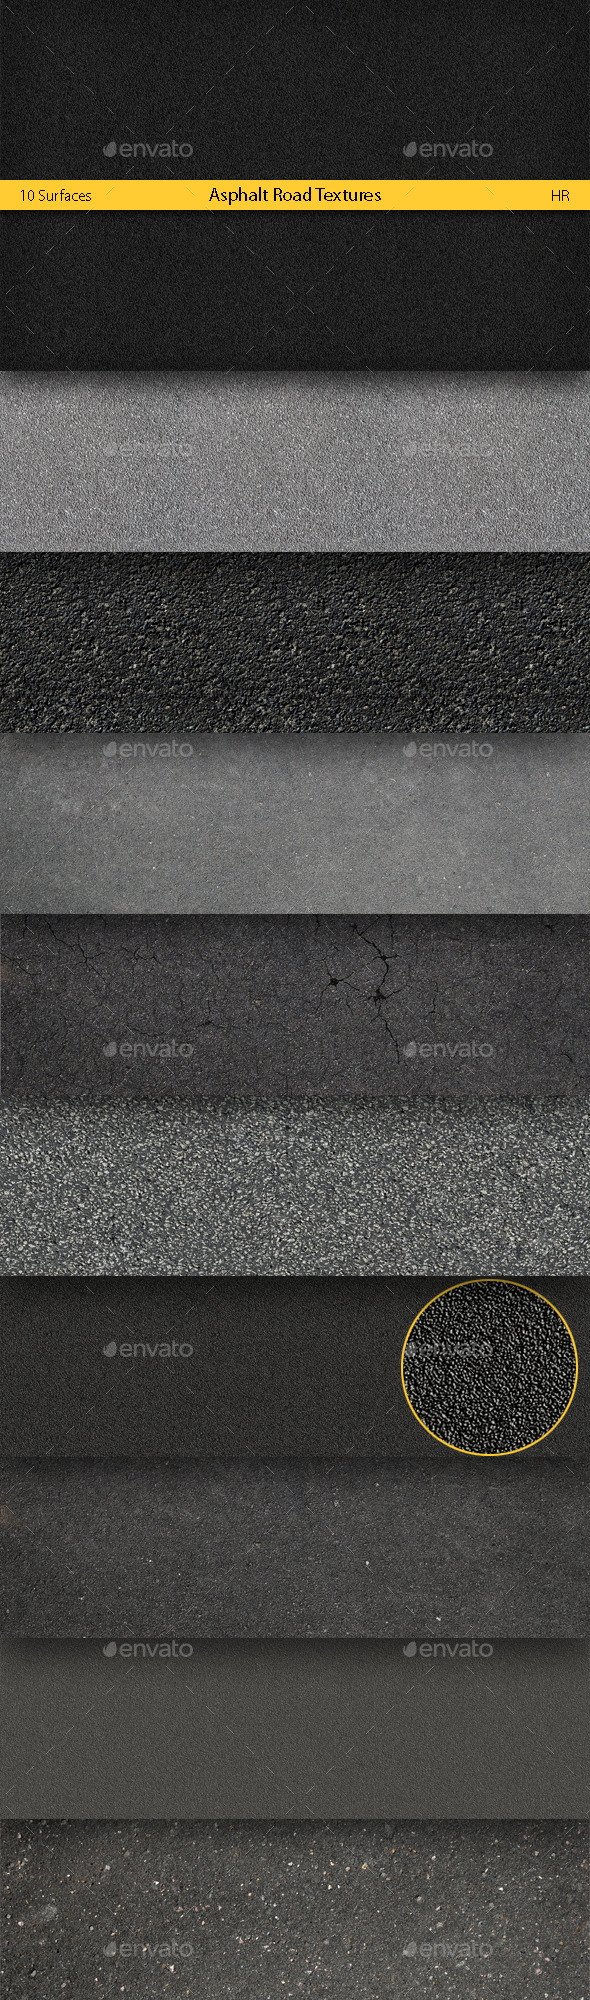 Asphalt Road Textures Backgrounds